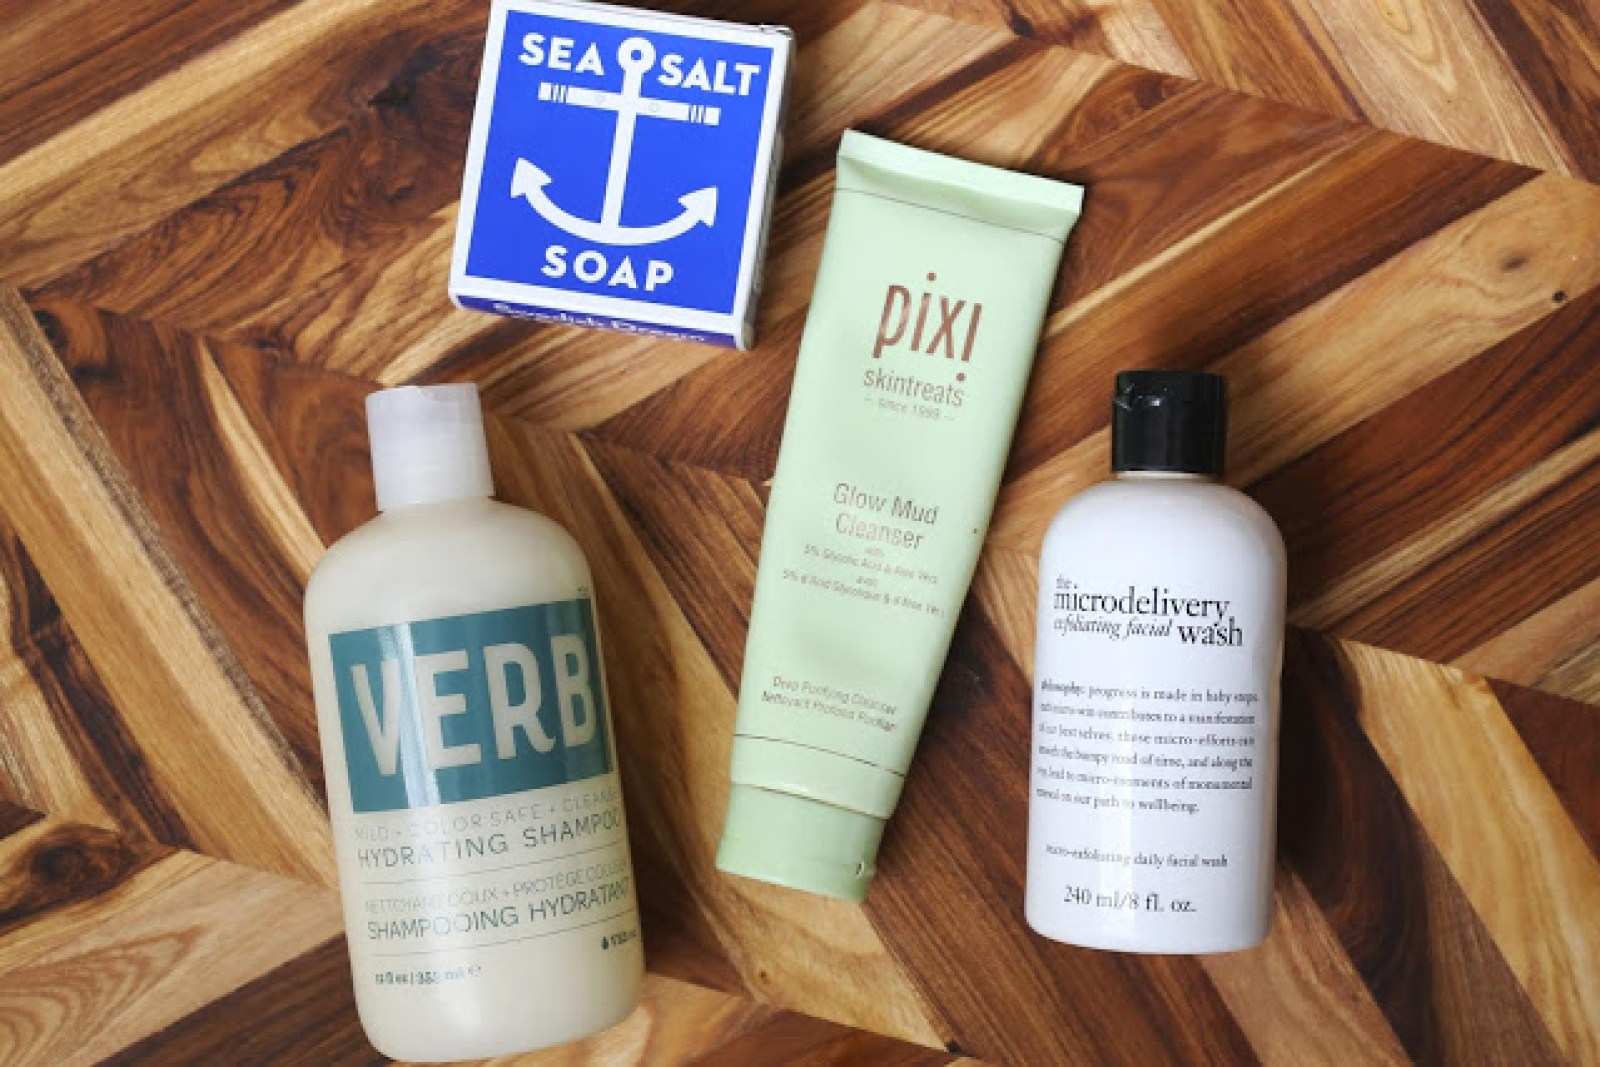 shower products laid out including sea salt soap, verb shampoo, pixi mud cleanser and philosophy exfoliating wash